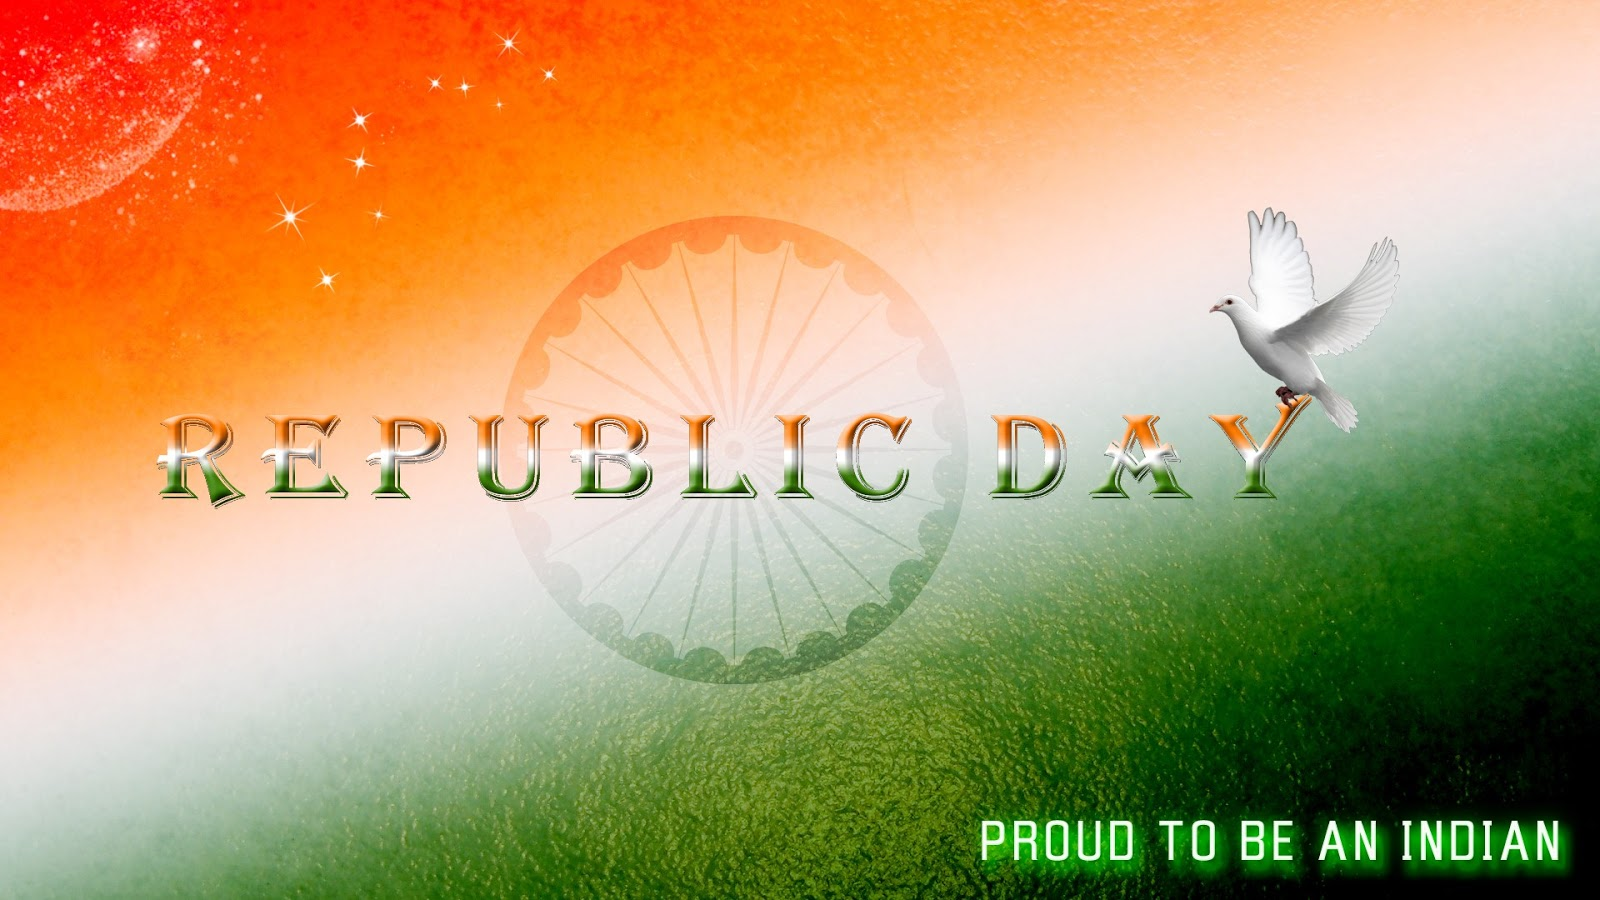 Fr fr free january 2017 desktop wallpaper - Republic Day Hd Wallpapers For Desktop Background Images 2